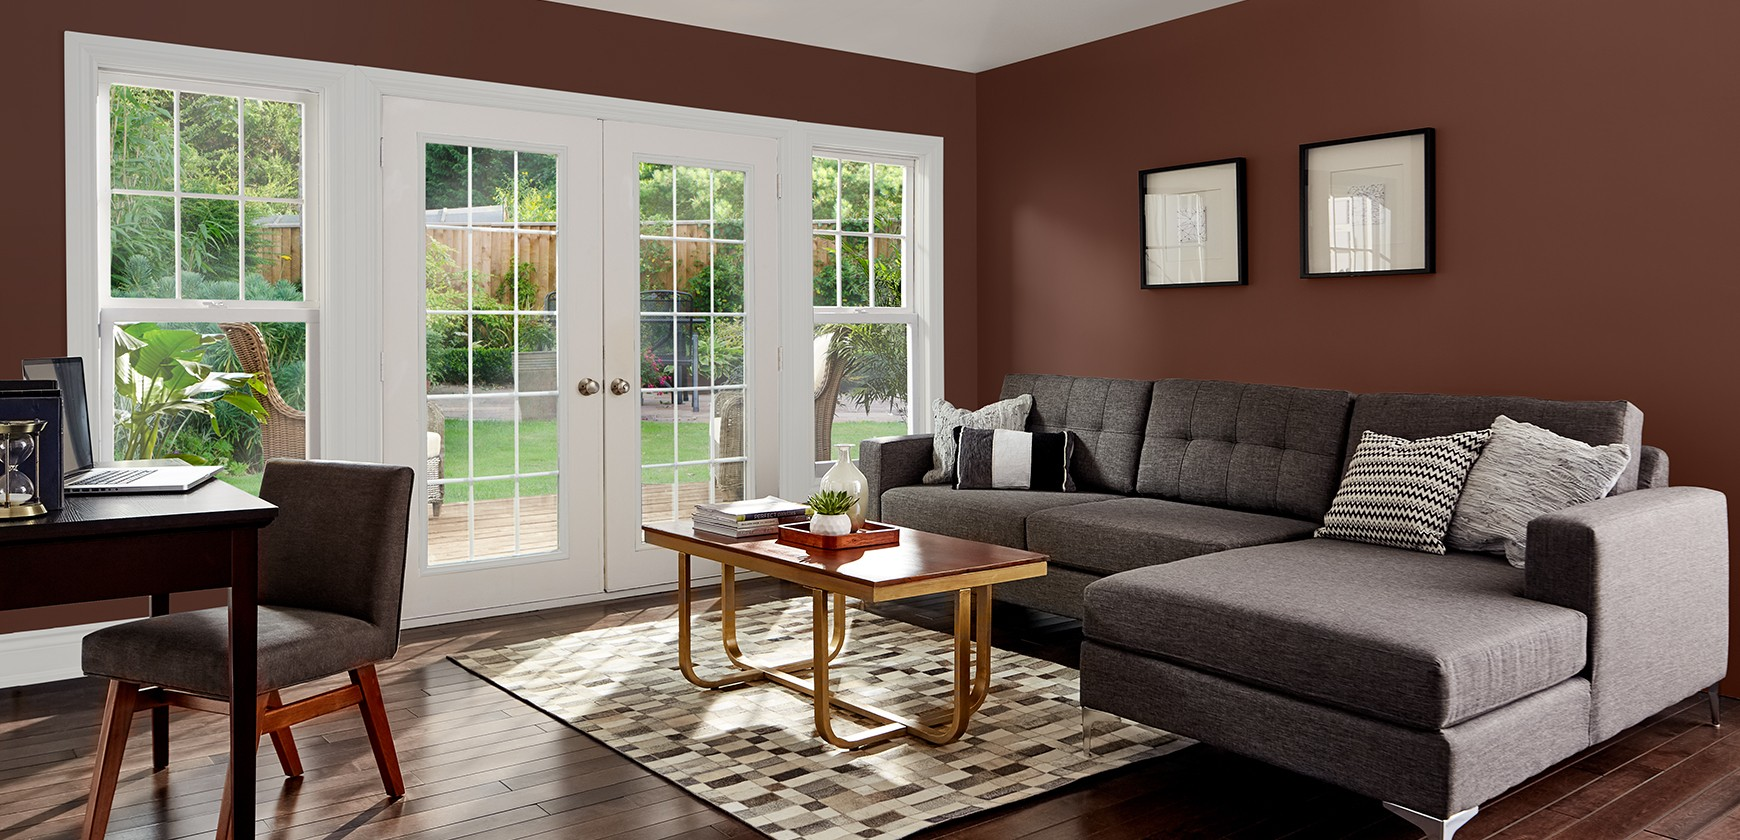 Create warm family rooms with Premier paint.